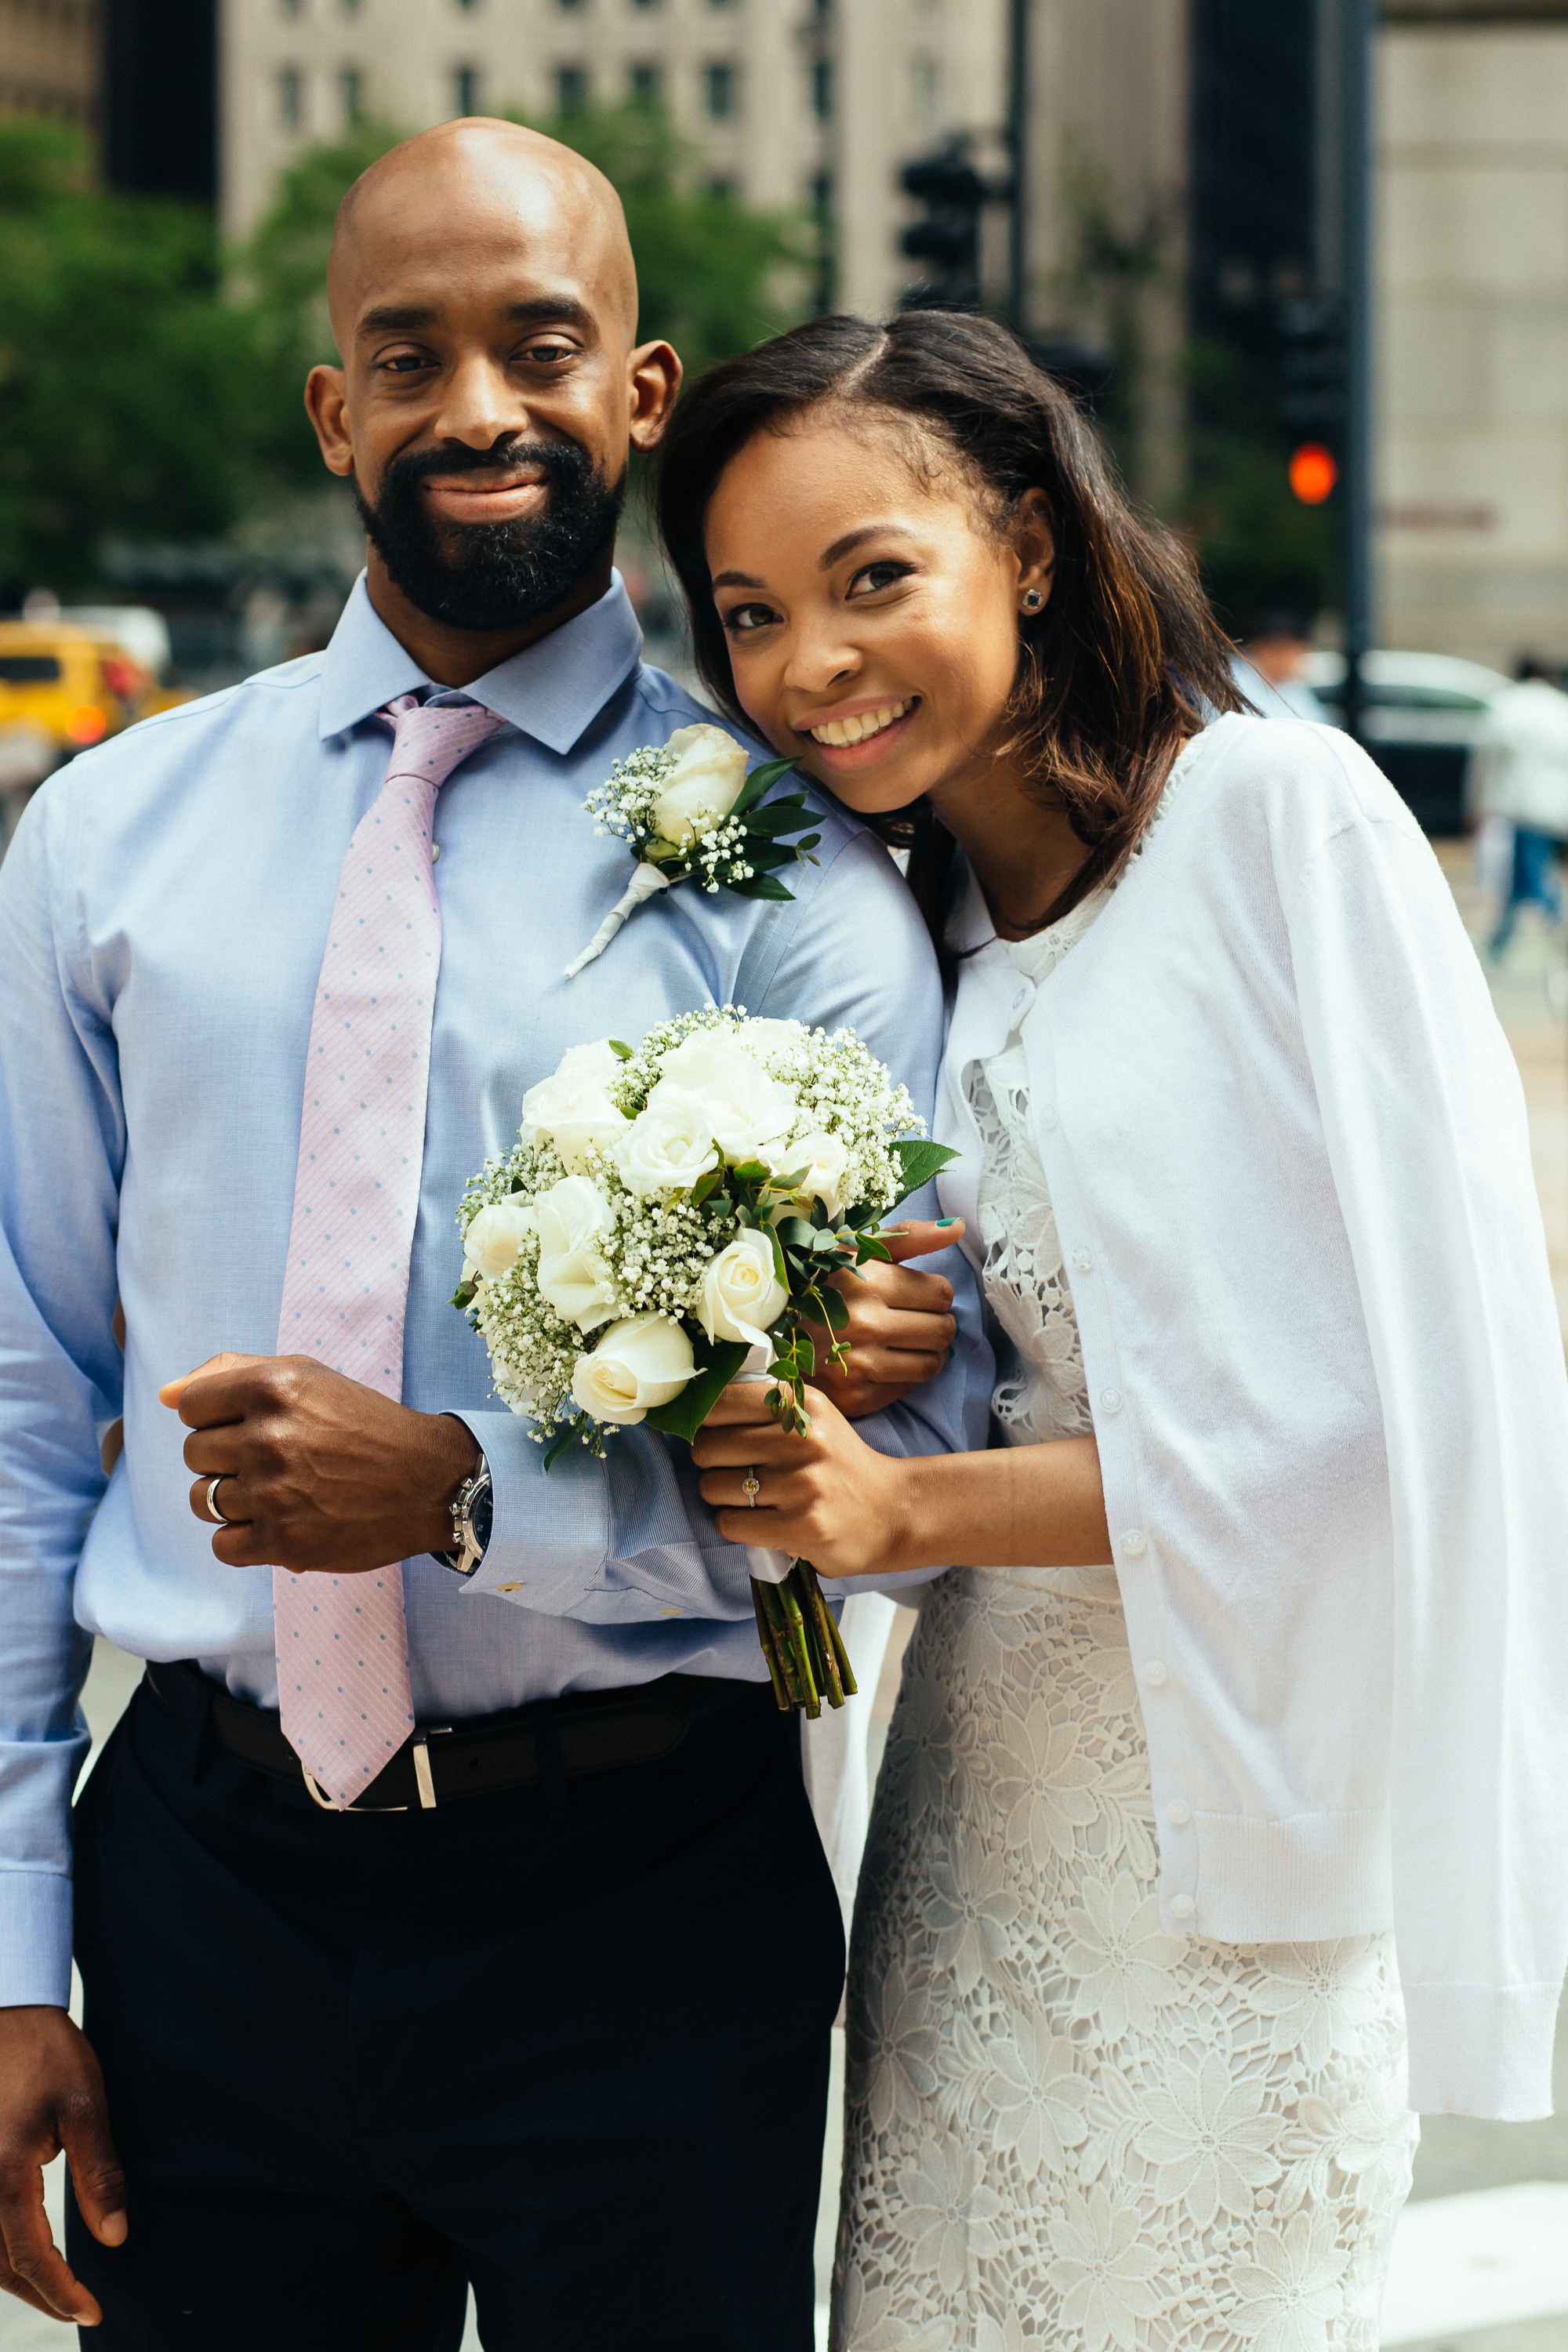 chicago_elopement_tony_brittany-6.jpg